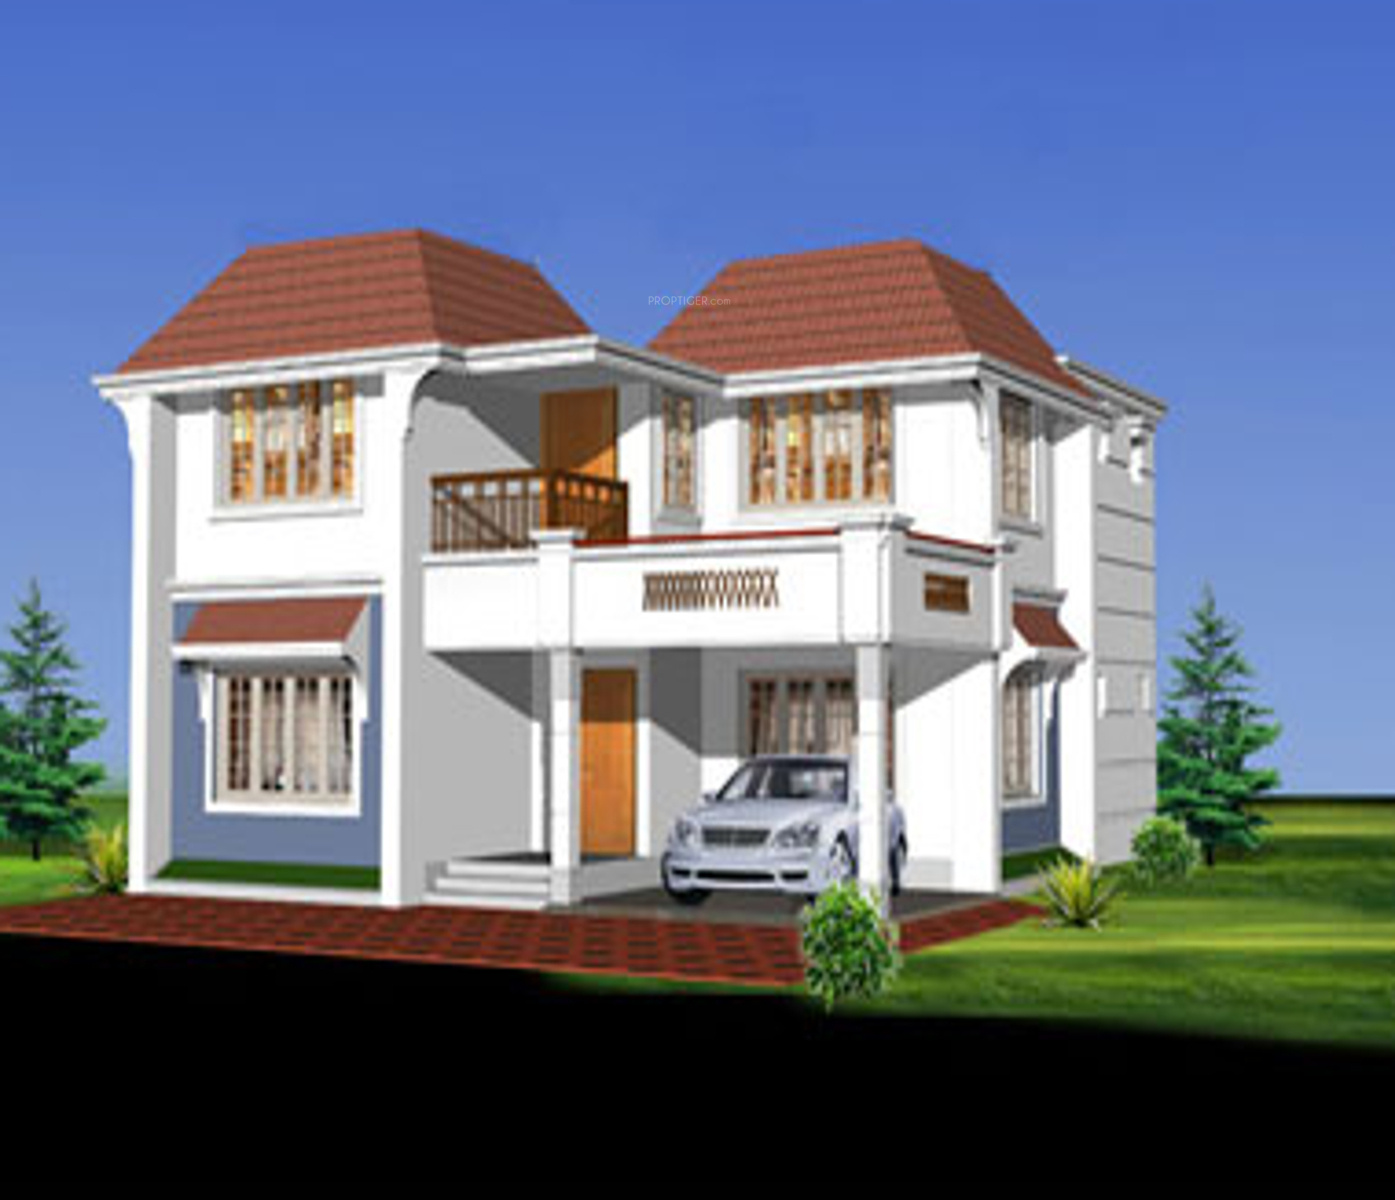 Coral Group - All New Projects by Coral Group Builders